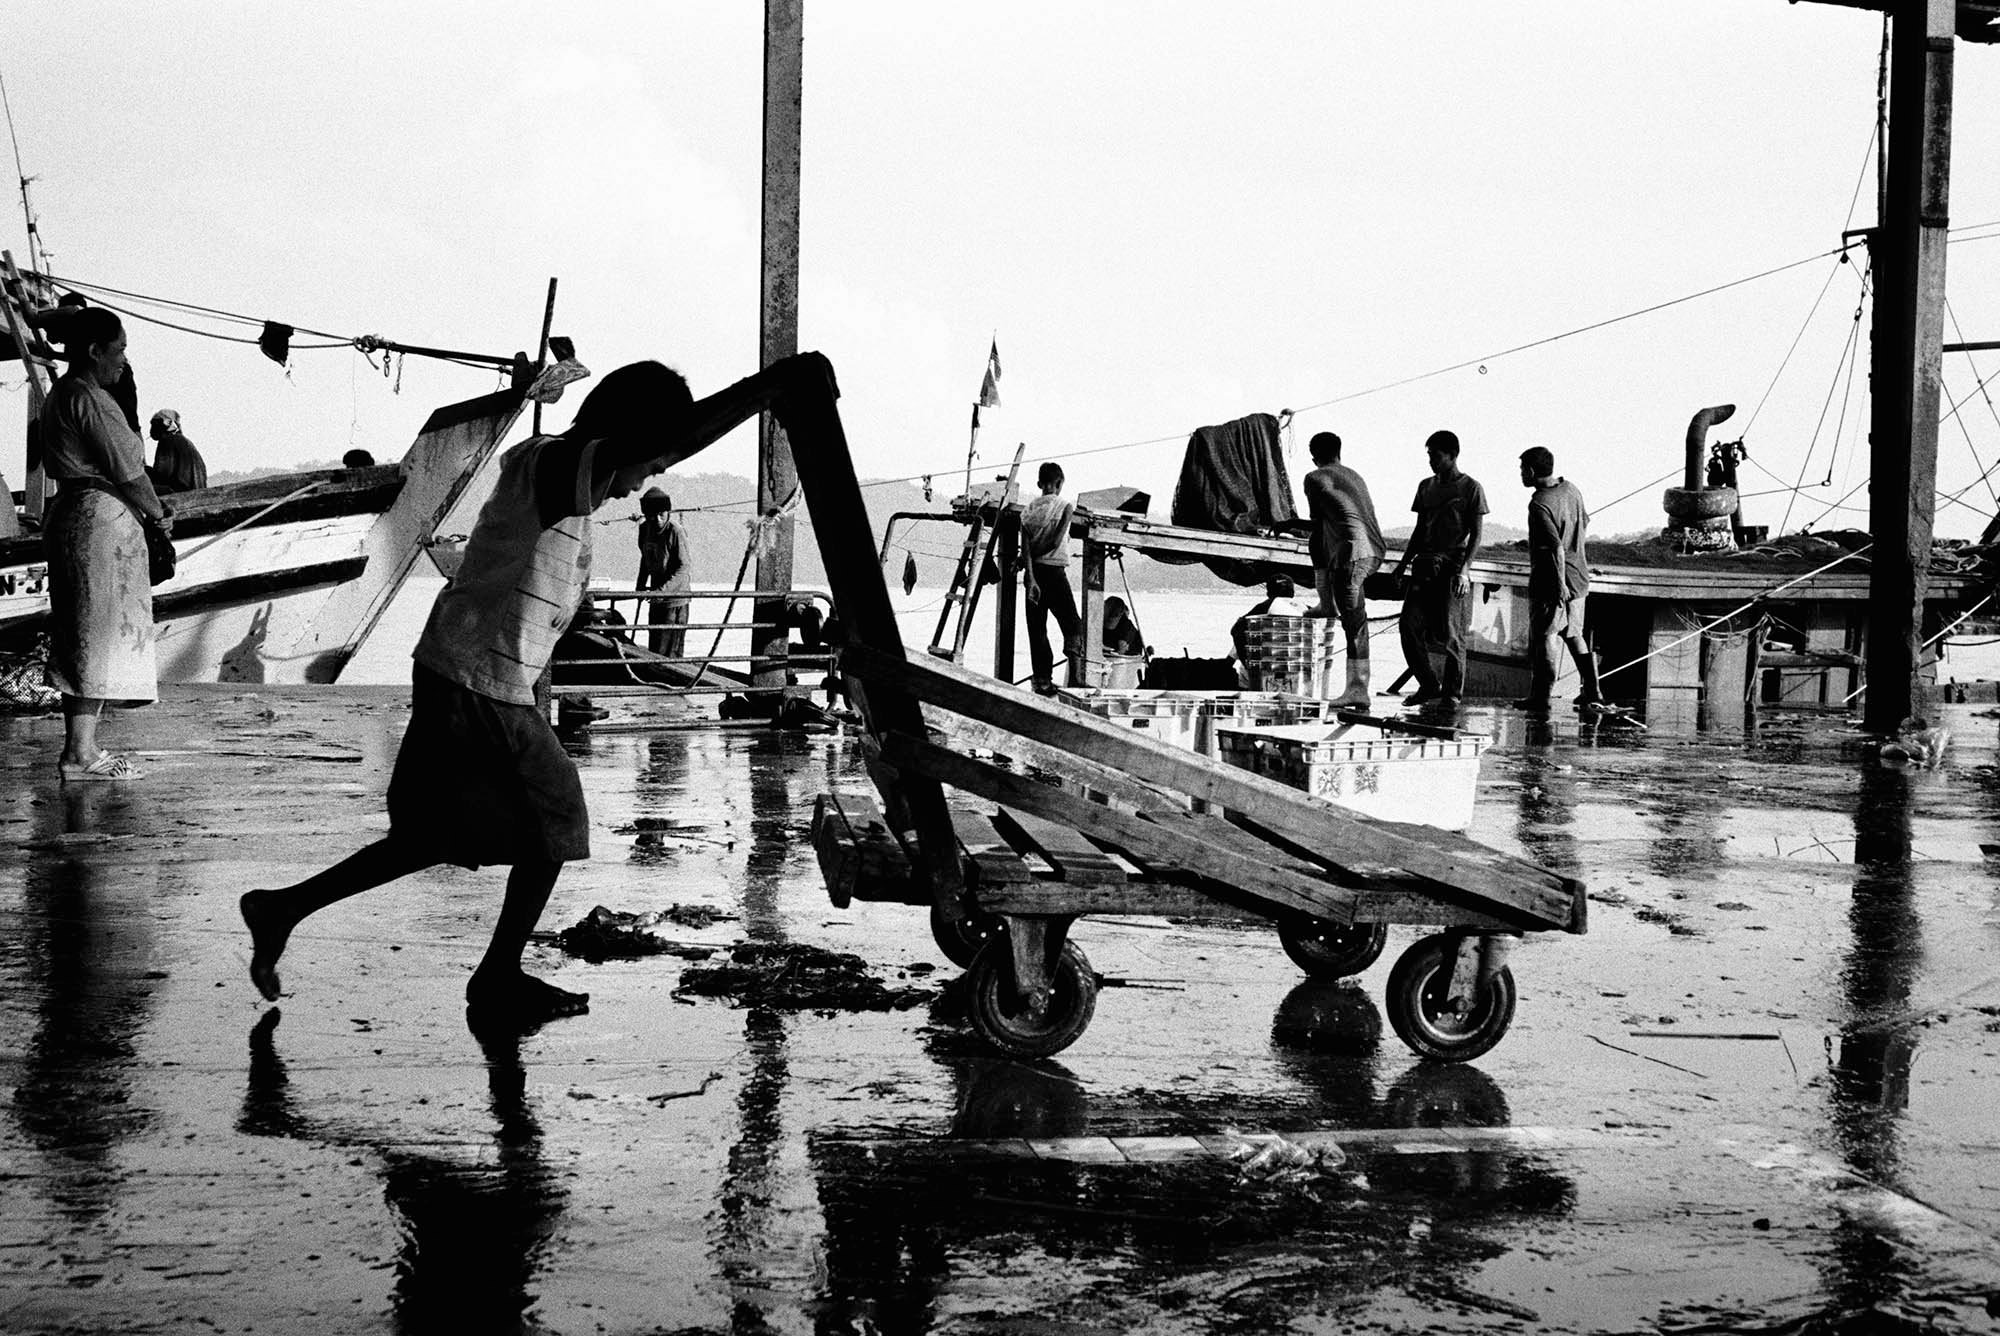 A young stateless boy pushes a cart at a fish market in Kota Kinabalu, Sabah, Malaysia. Up to 50,000 children, mostly of Filipino and Indonesian descent are stateless in Sabah.